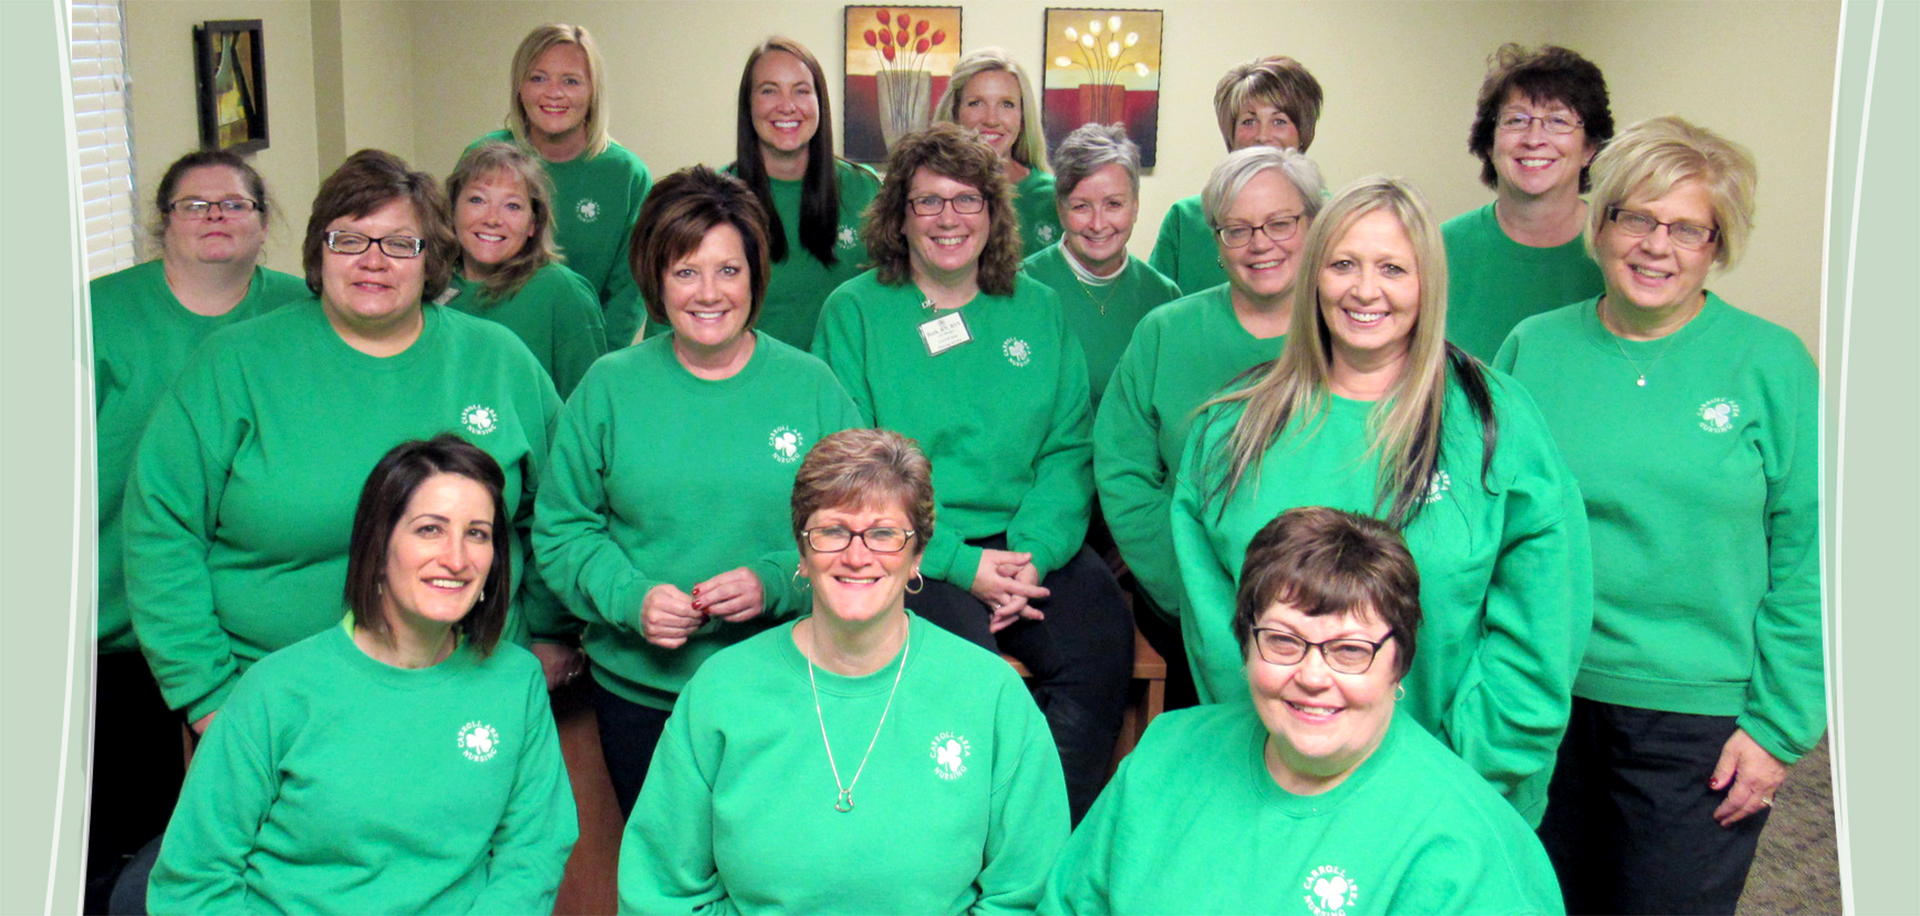 Carroll Area Nursing Service Staff